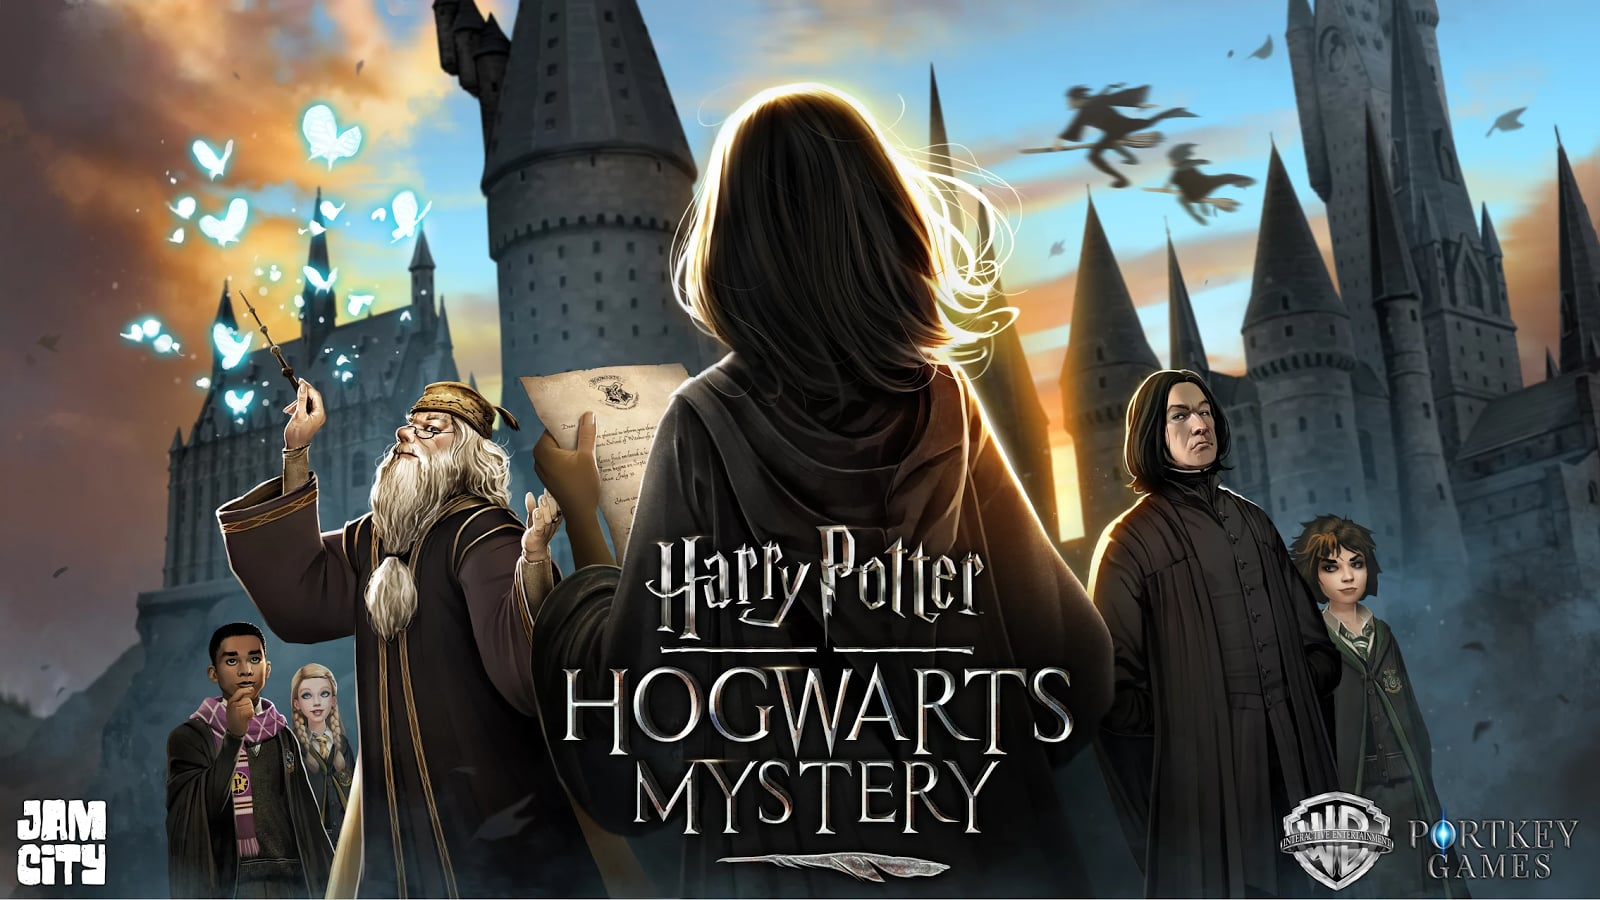 'Harry Potter: Hogwarts Mystery' mobile game comes alive in first trailer